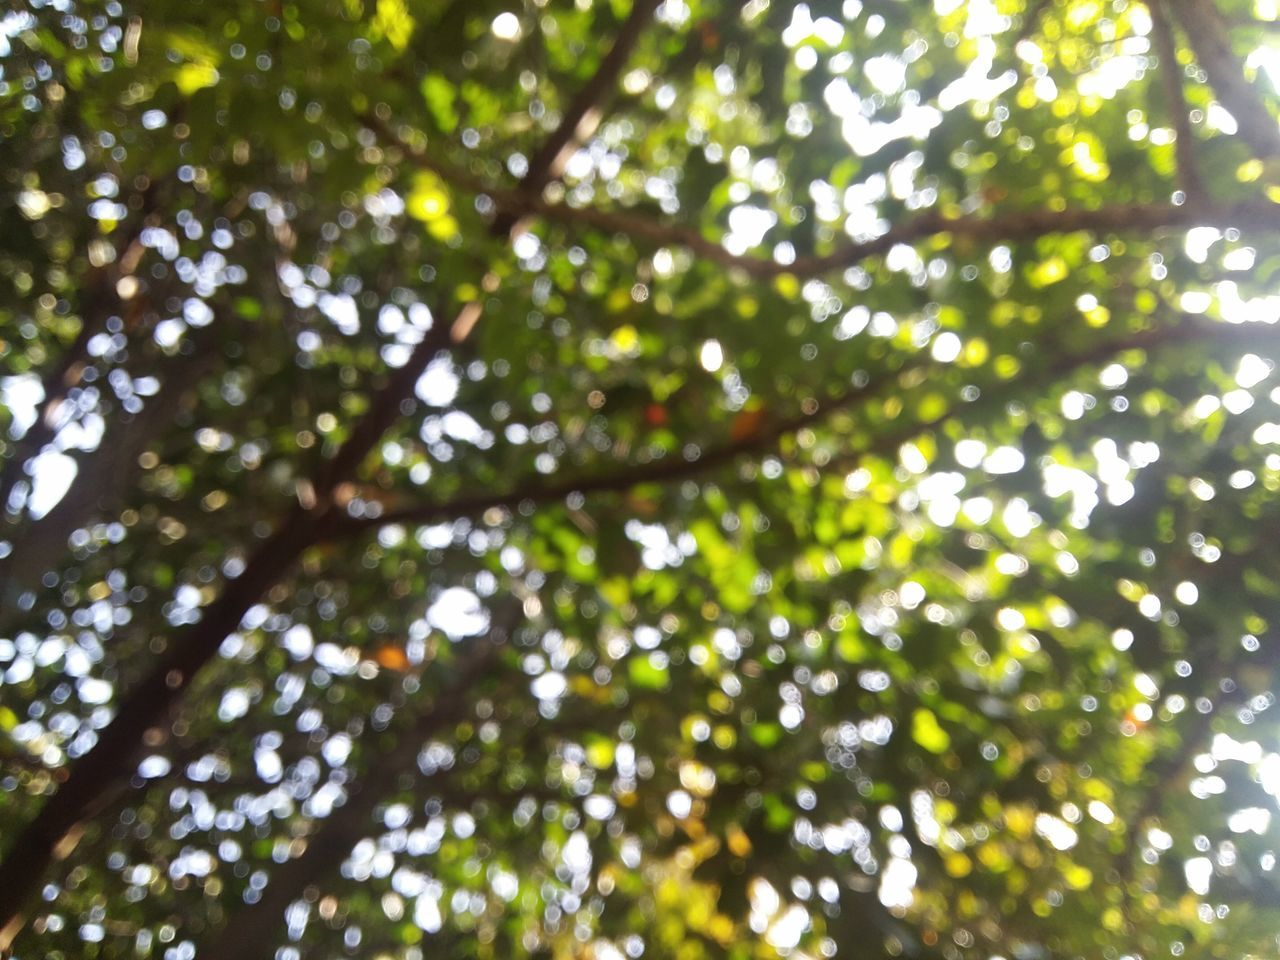 nature, day, beauty in nature, growth, low angle view, tree, leaf, forest, outdoors, no people, close-up